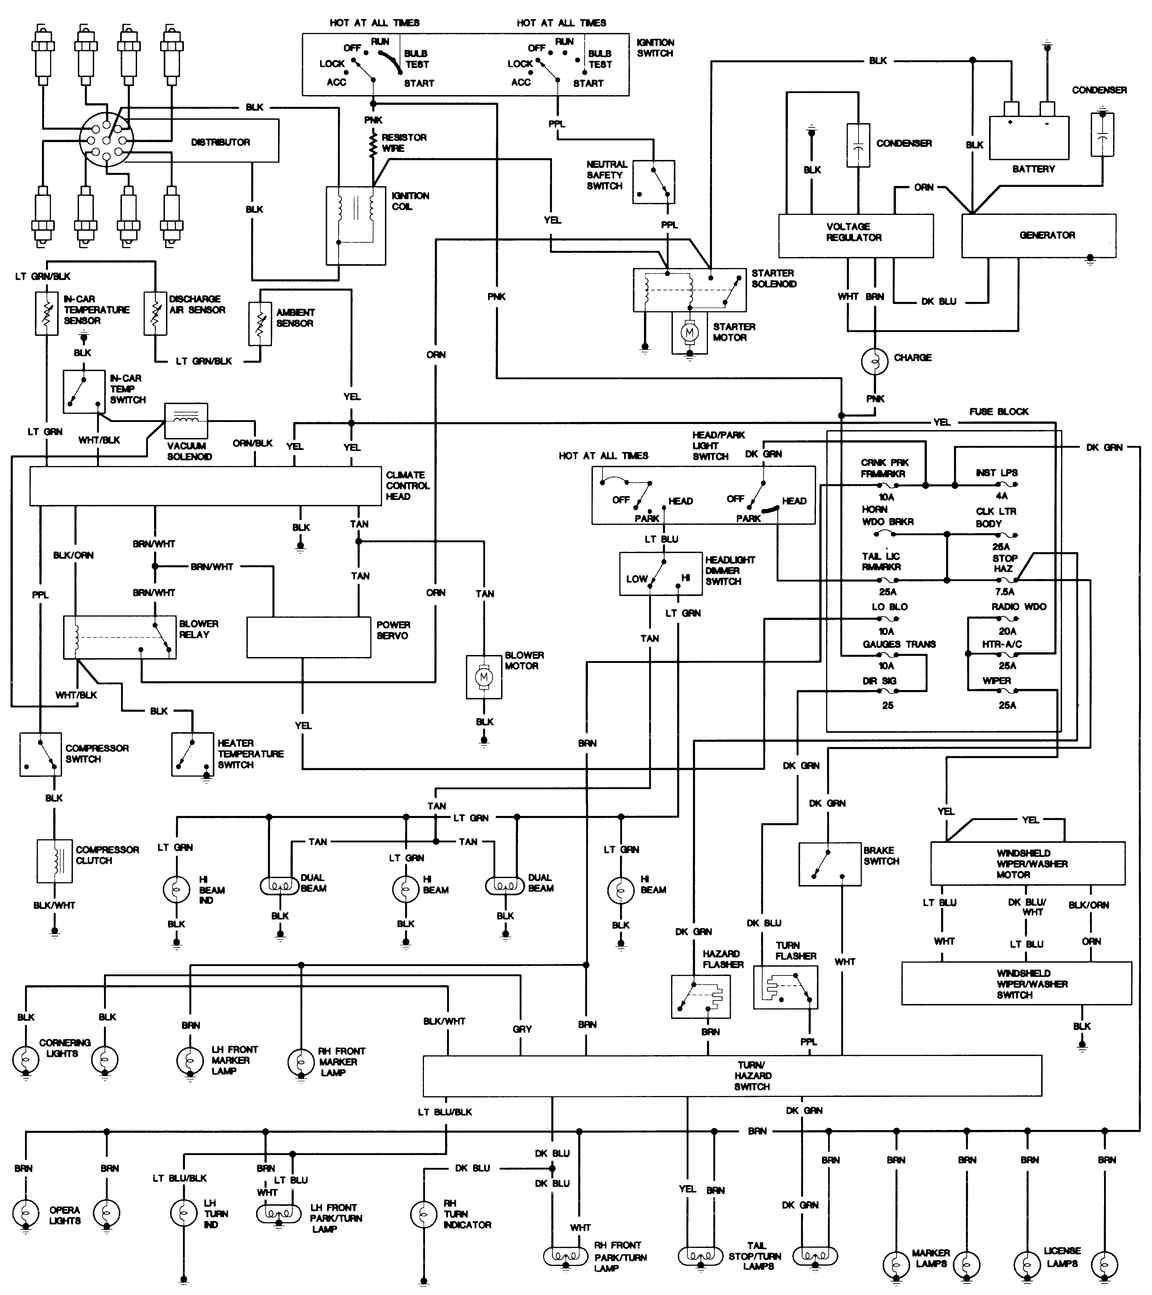 1976 cadillac eldorado wiring diagram simple schematic diagram 1978 Cadillac Seville 1976 cadillac eldorado wiring diagram wiring diagram 2000 cadillac deville rear window wiring schematics 1976 cadillac eldorado wiring diagram